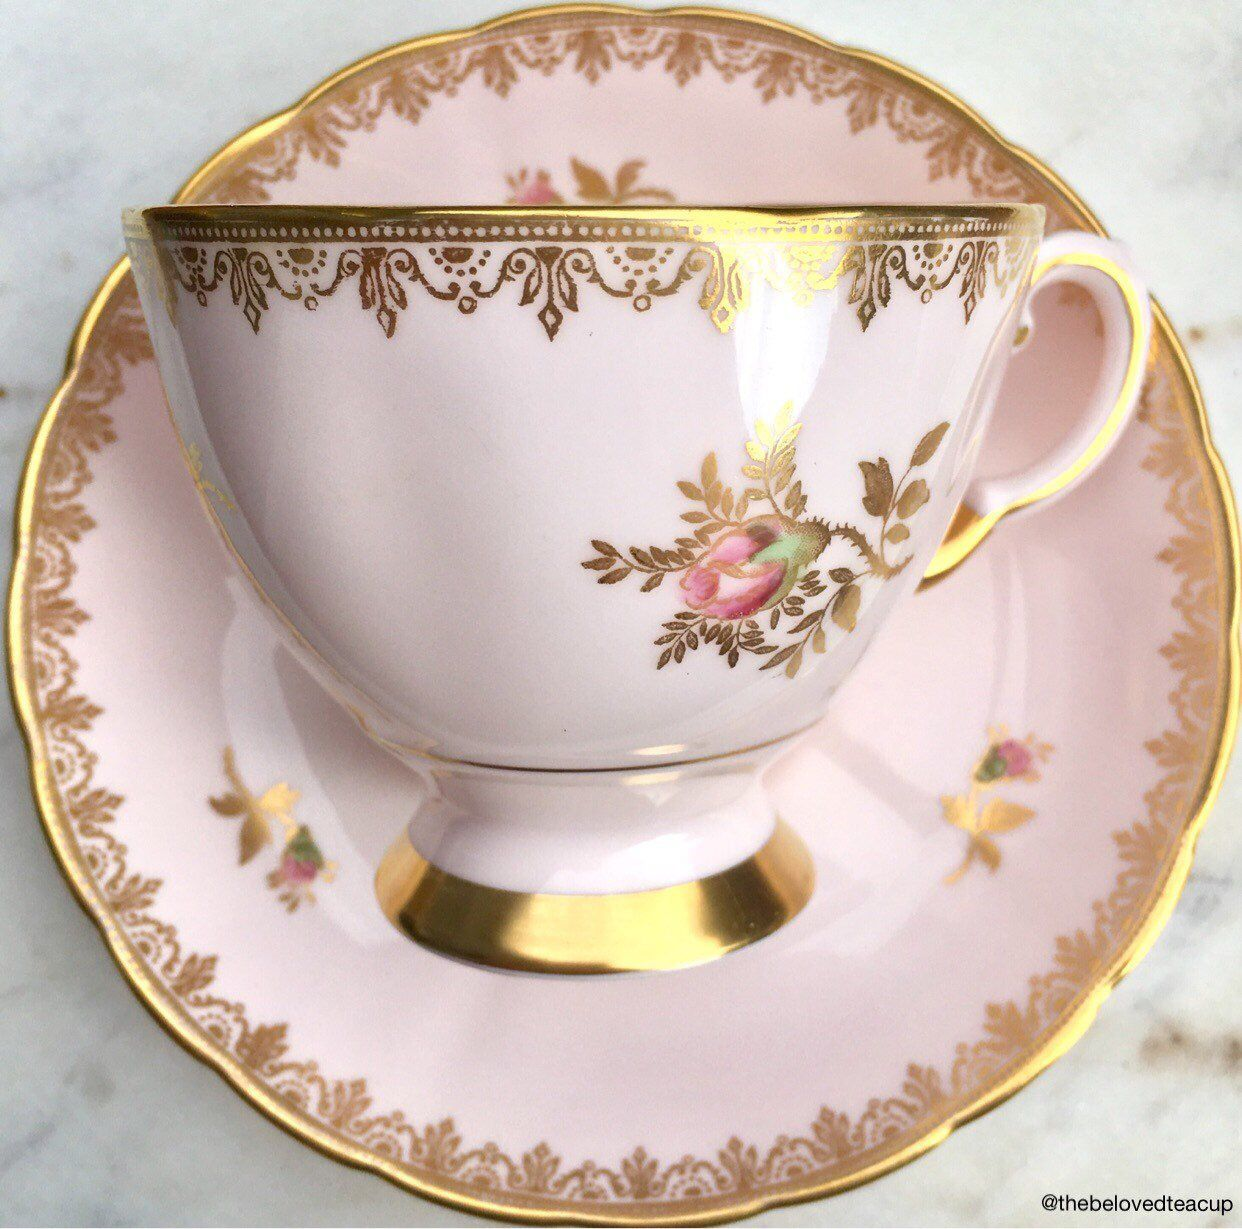 Where Can I Sell My China Near Me